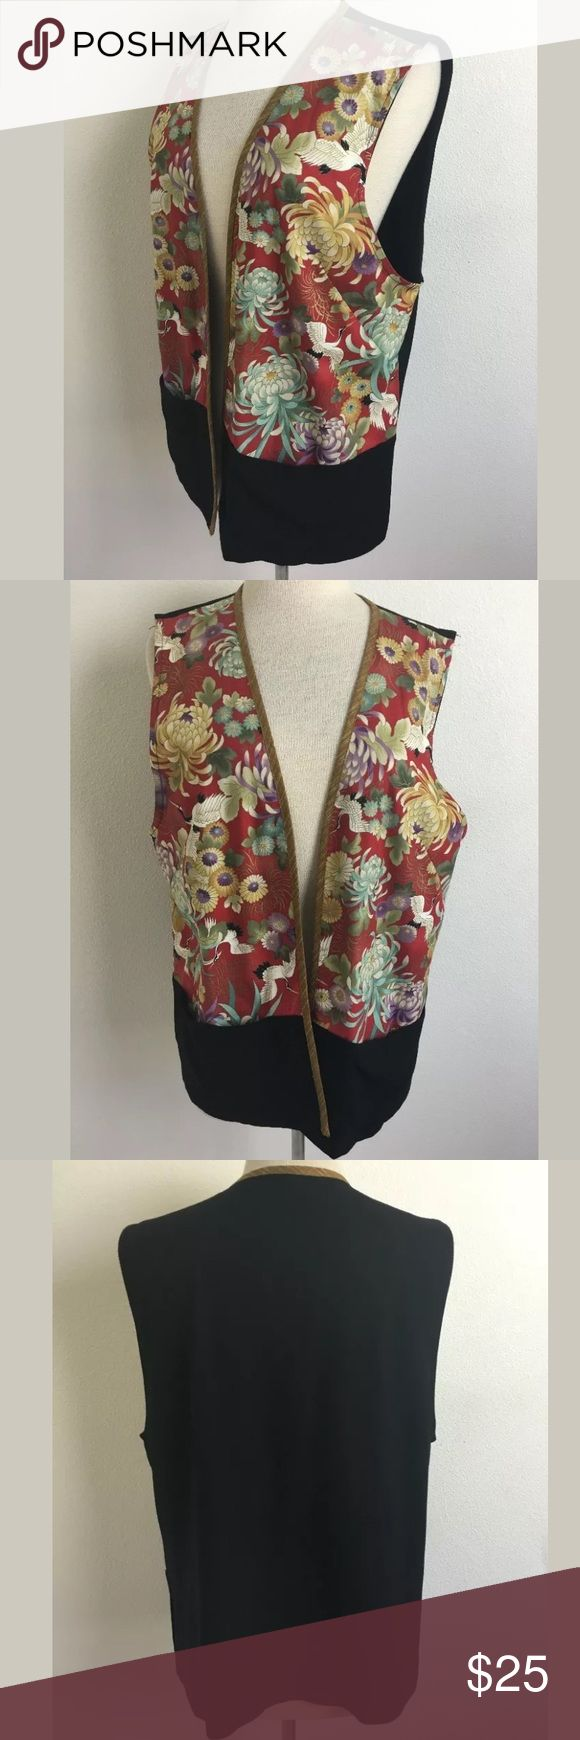 Naturally Petite vest Length Shoulder To Hem: 26.25 Bust: 44 Waist: 42 Fabric Content: Front 100% cotton, back 100% rayon Size is estimated. Please refer to measurements.    SKU: SD14797 Naturally Petite Tops